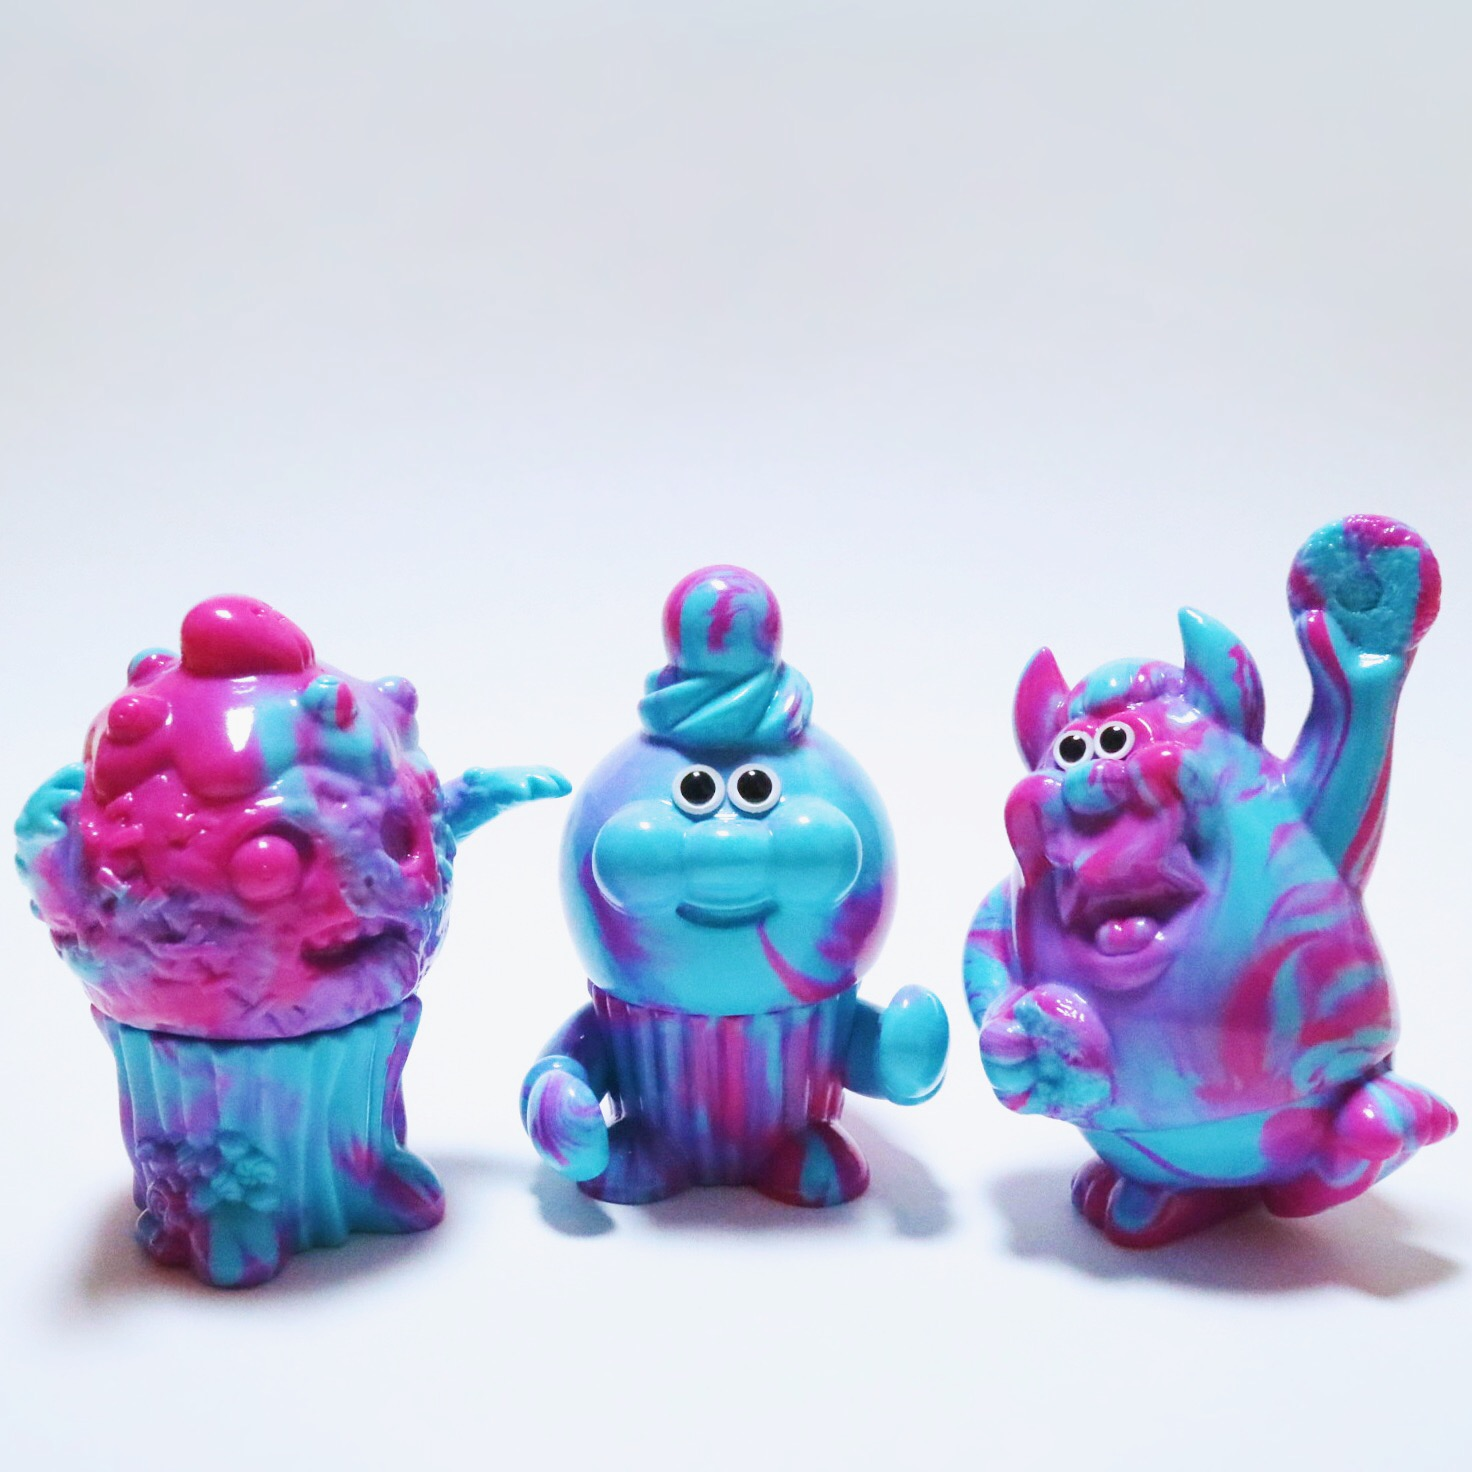 marbled_sofubi_toy